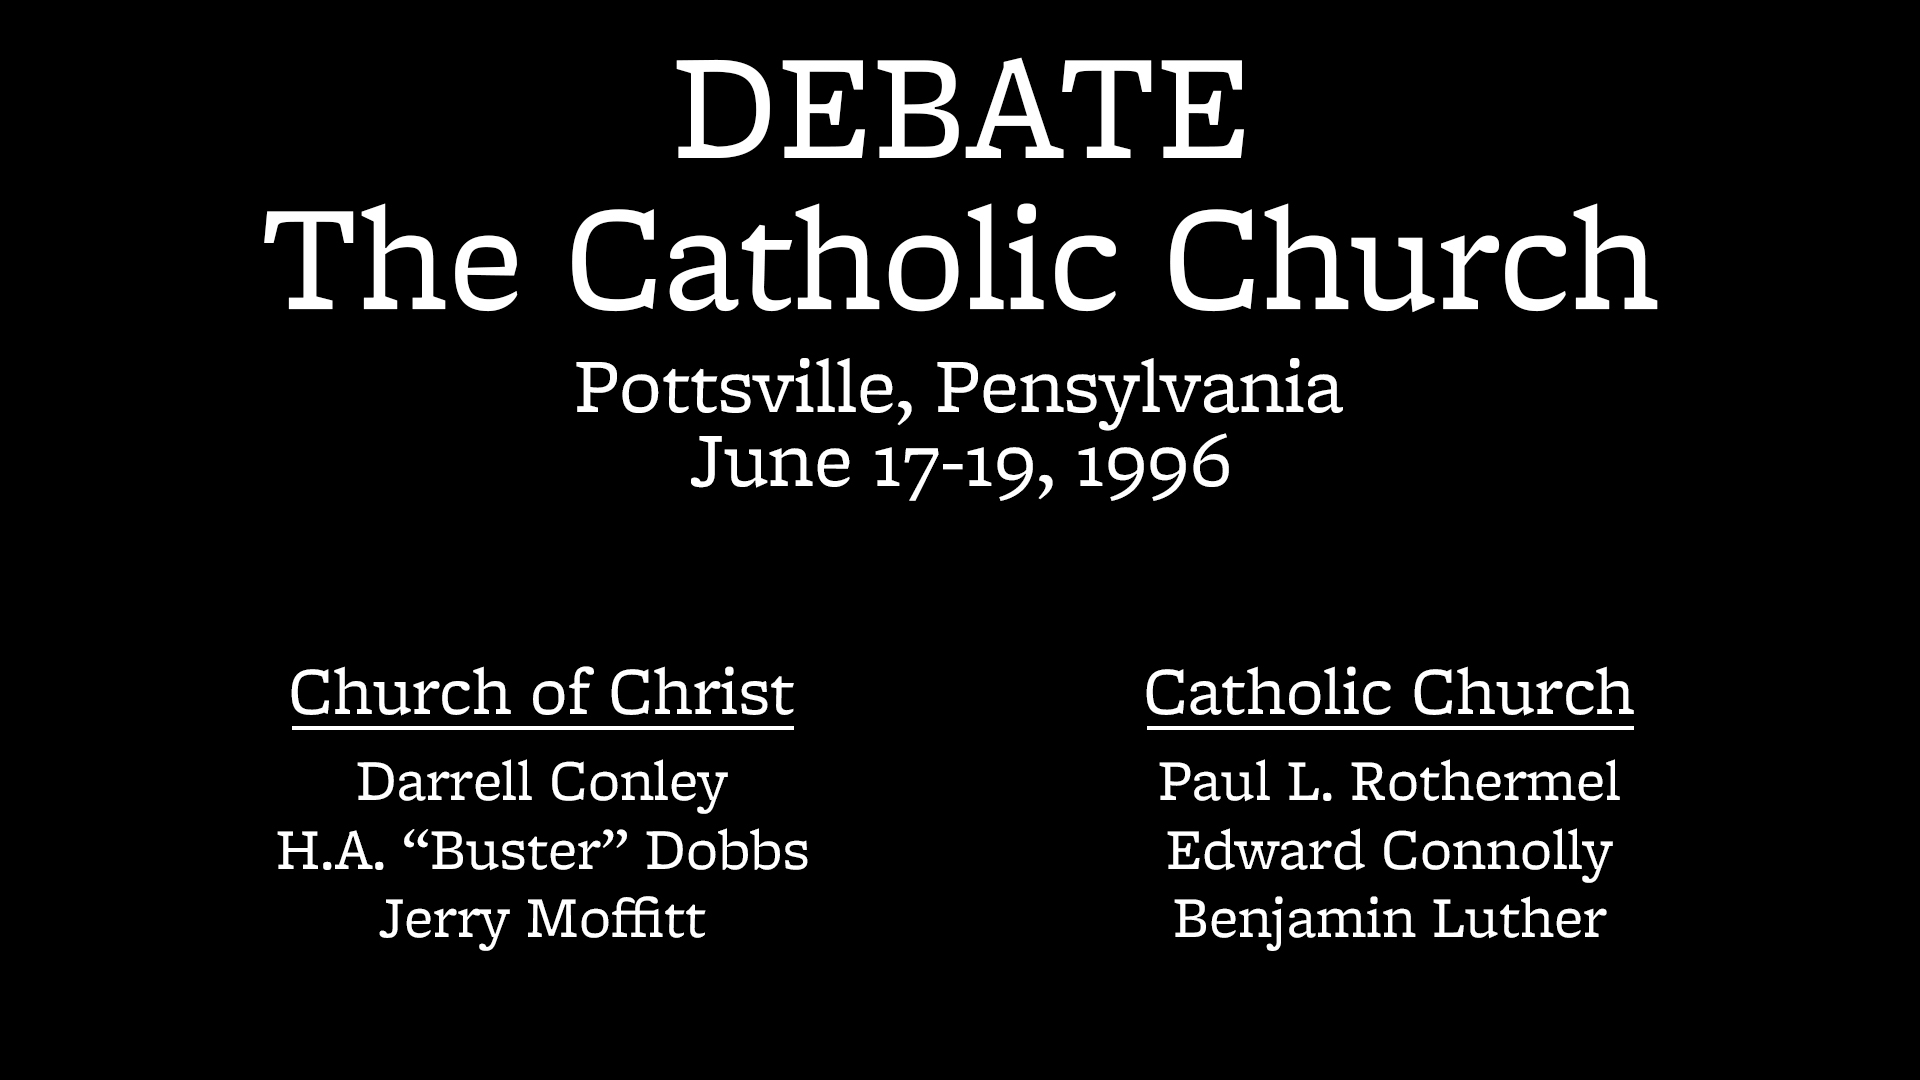 Debate on the Catholic Church (Pottsville, PA)